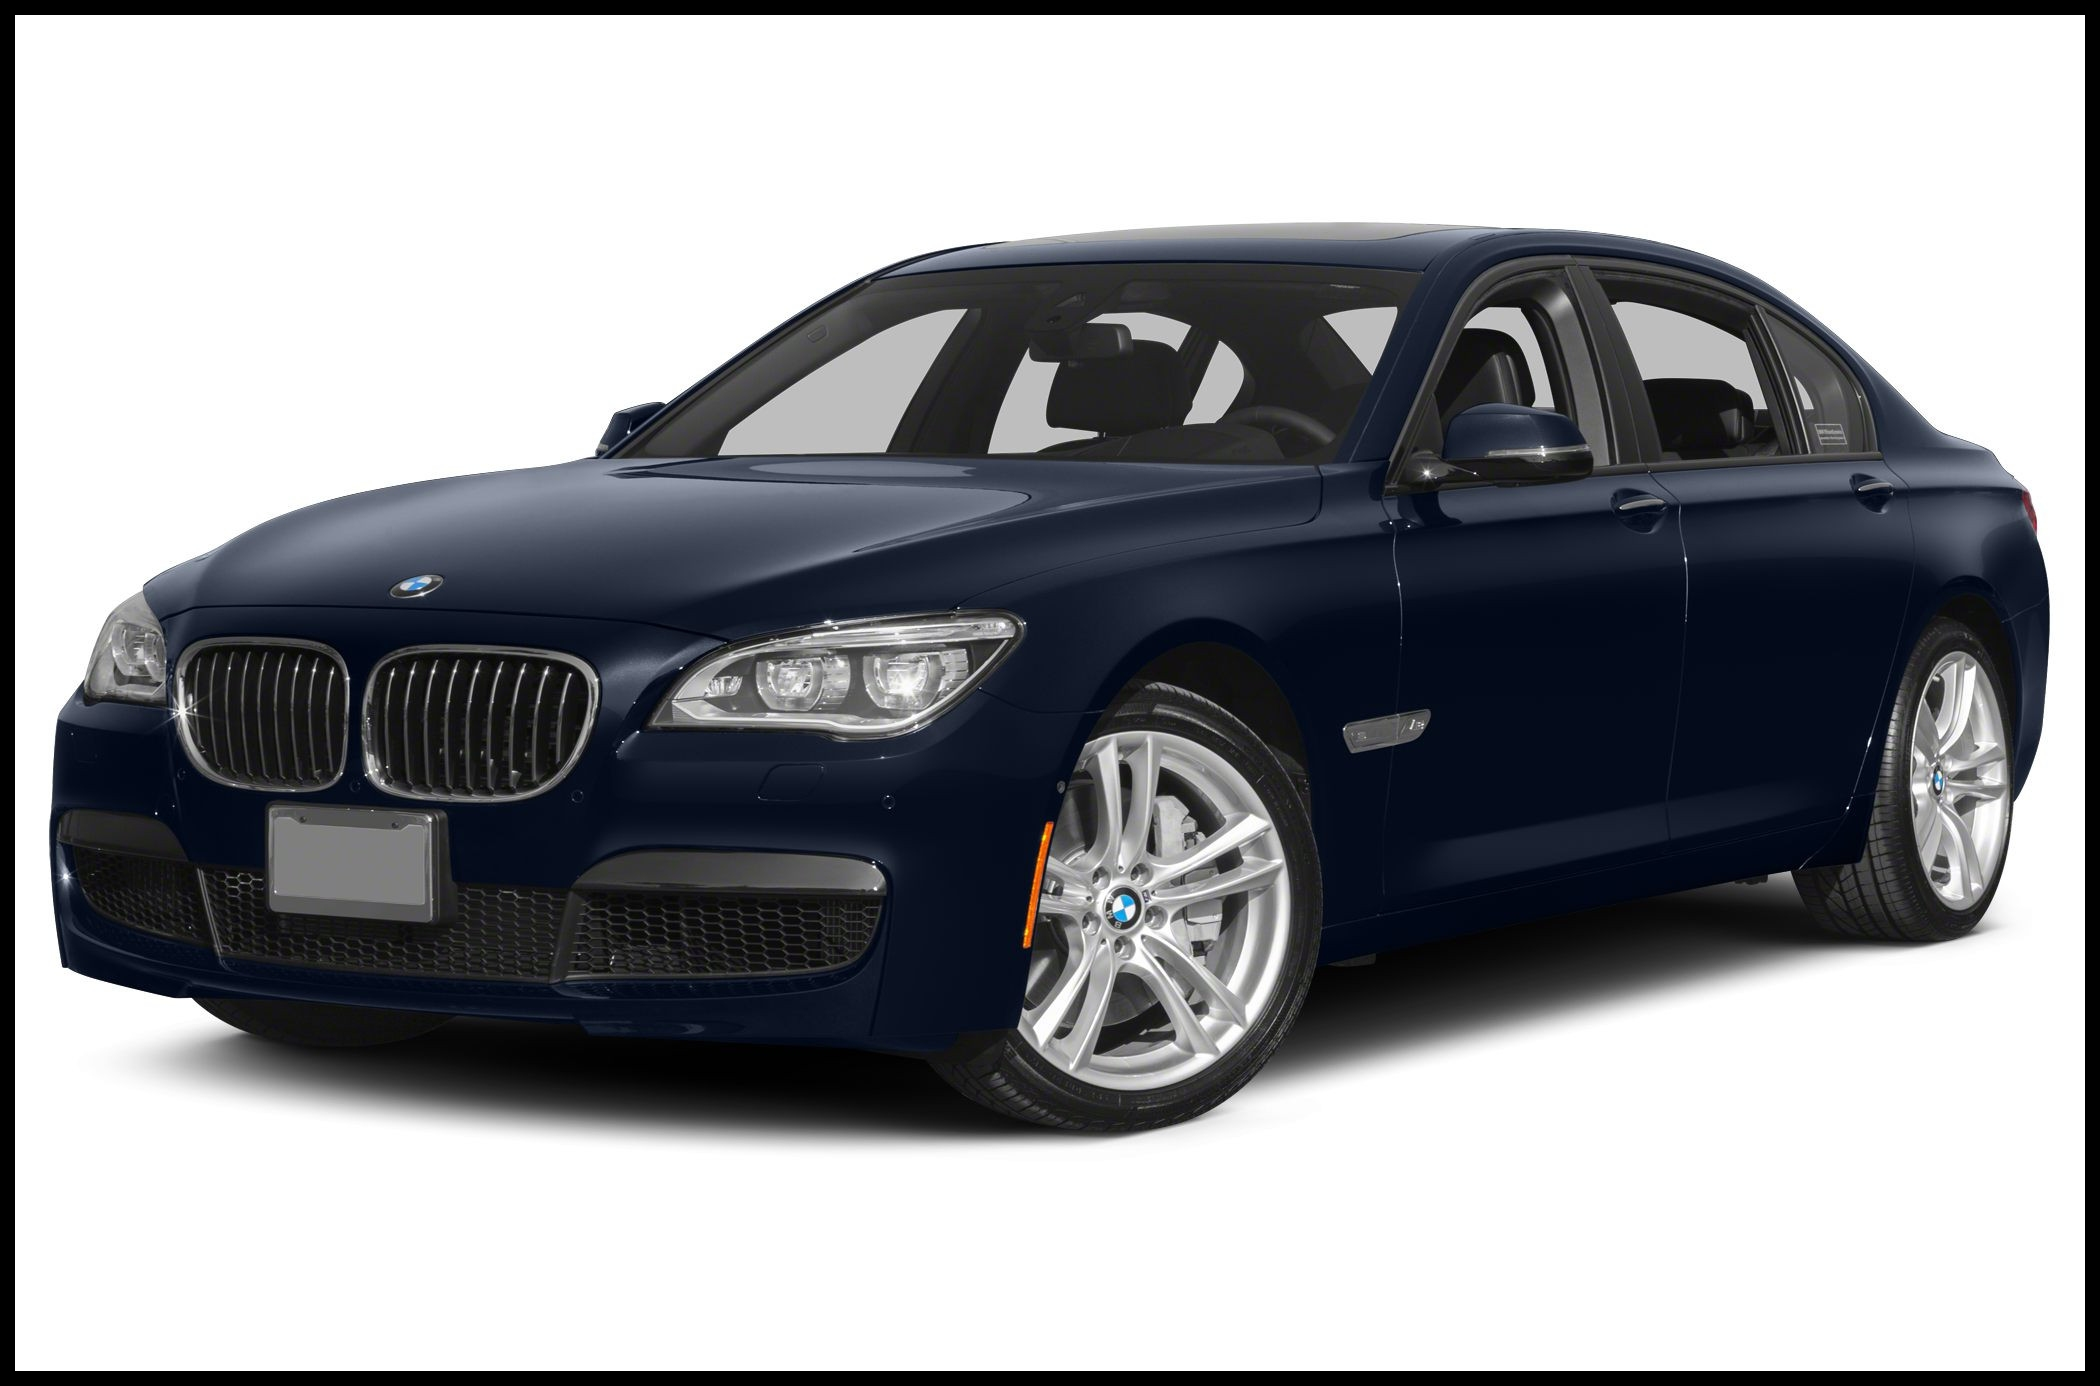 2015 Bmw 760li for Sale Best 2015 Bmw 760 Specs and Prices